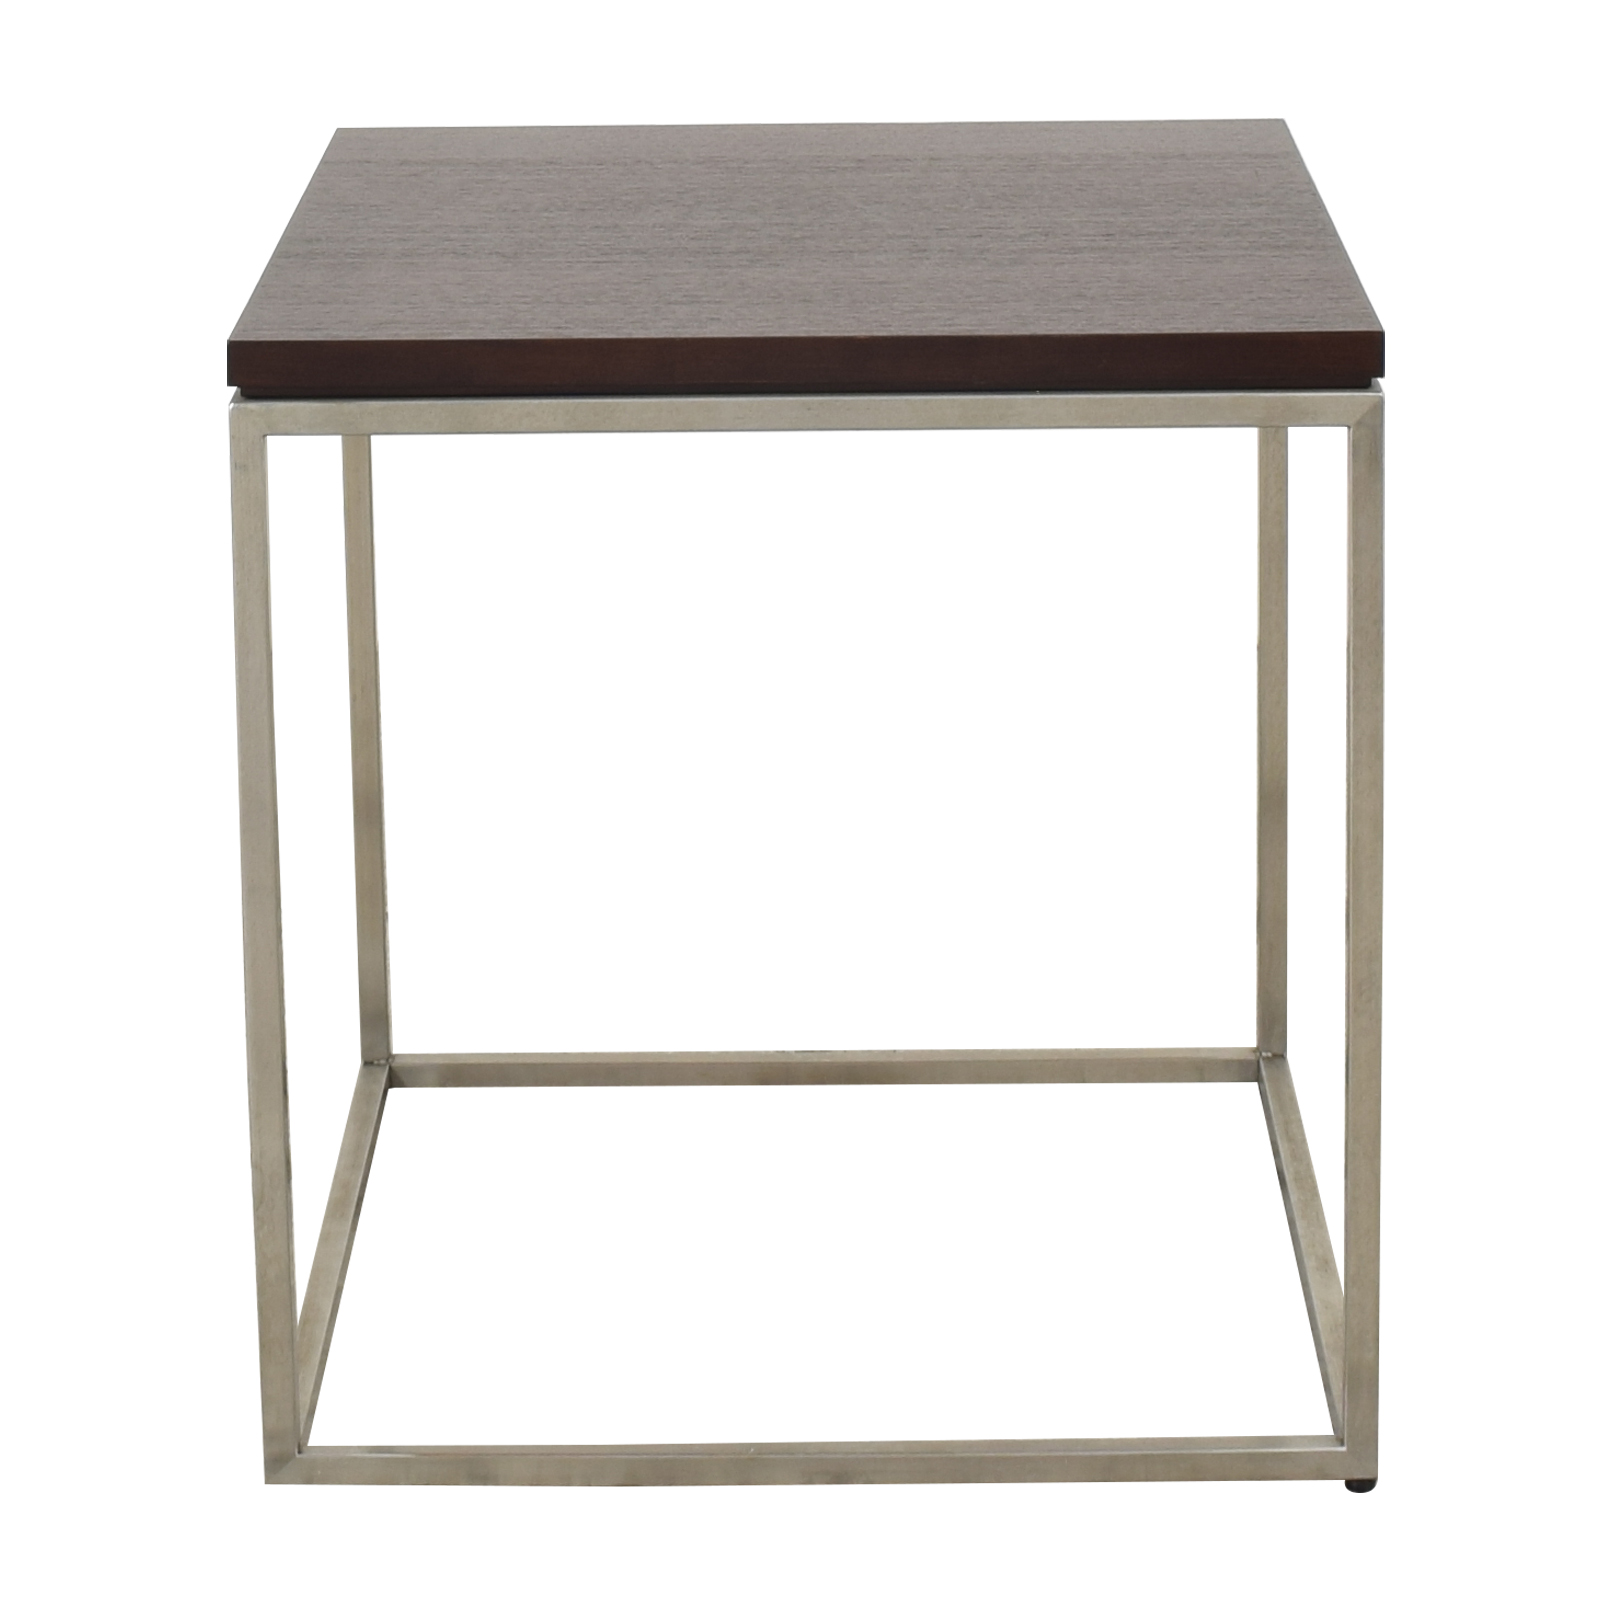 Ethan Allen Ethan Allen Square End Table ct